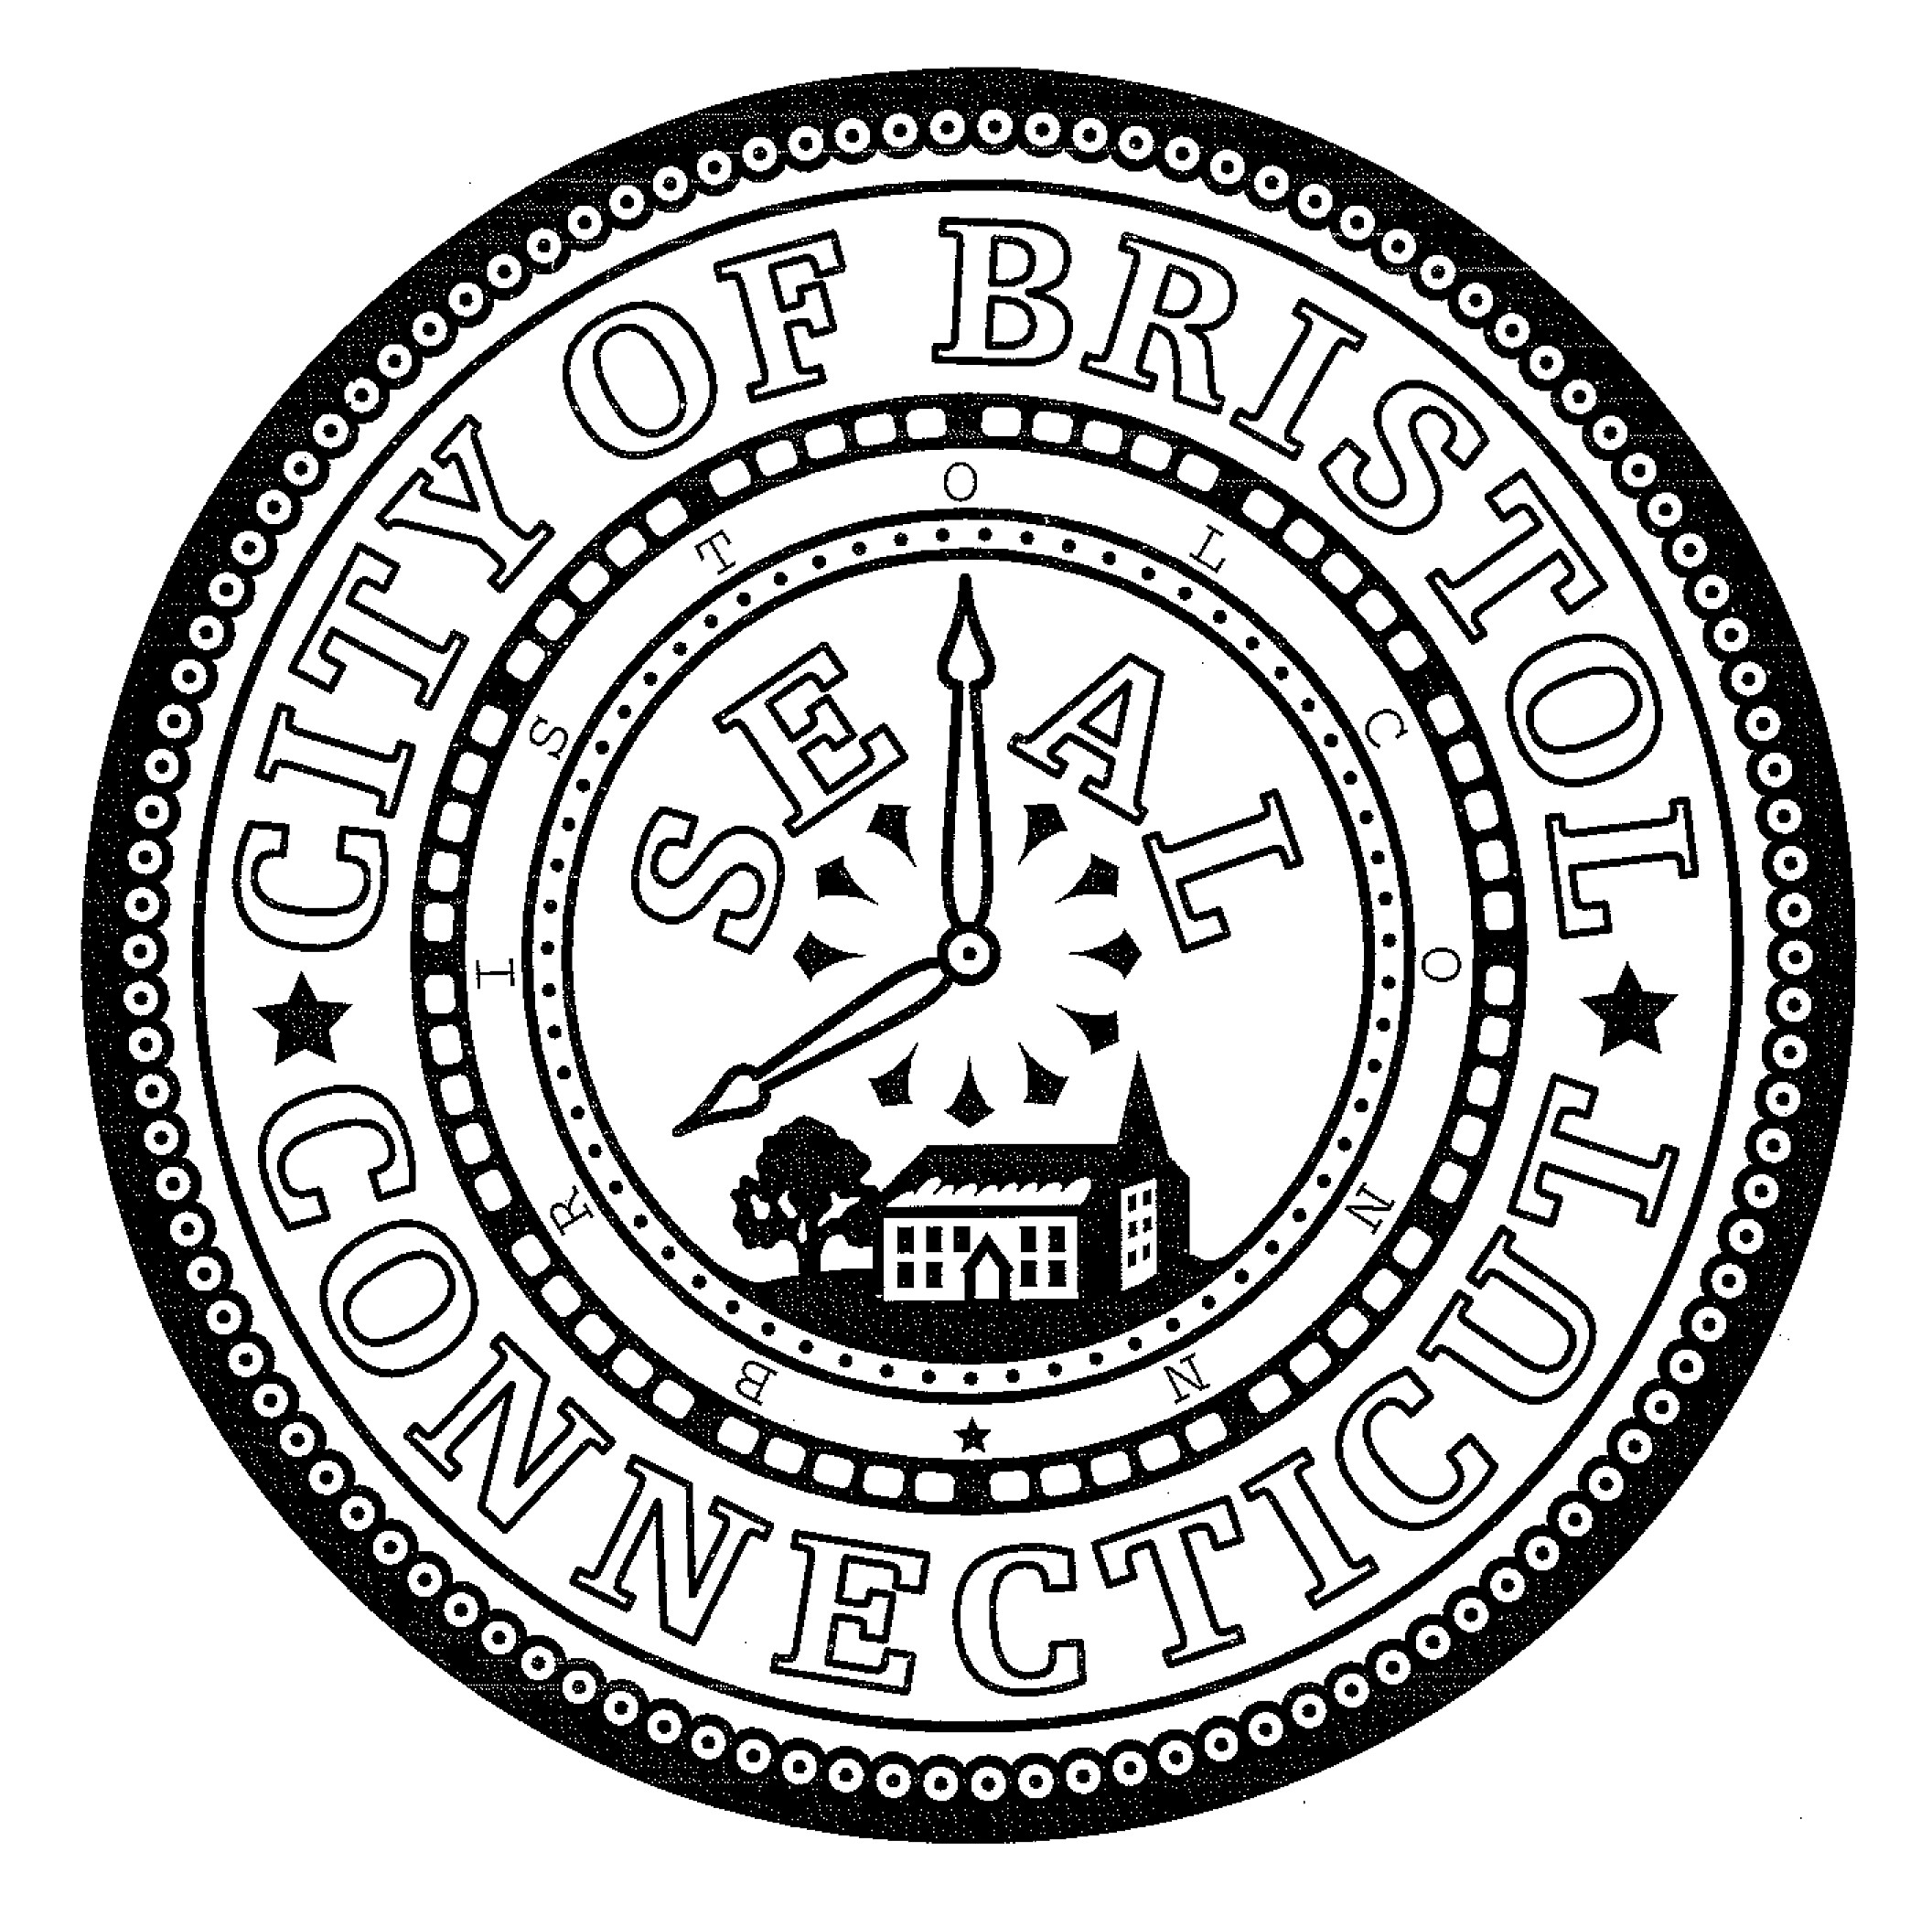 City of Bristol logo